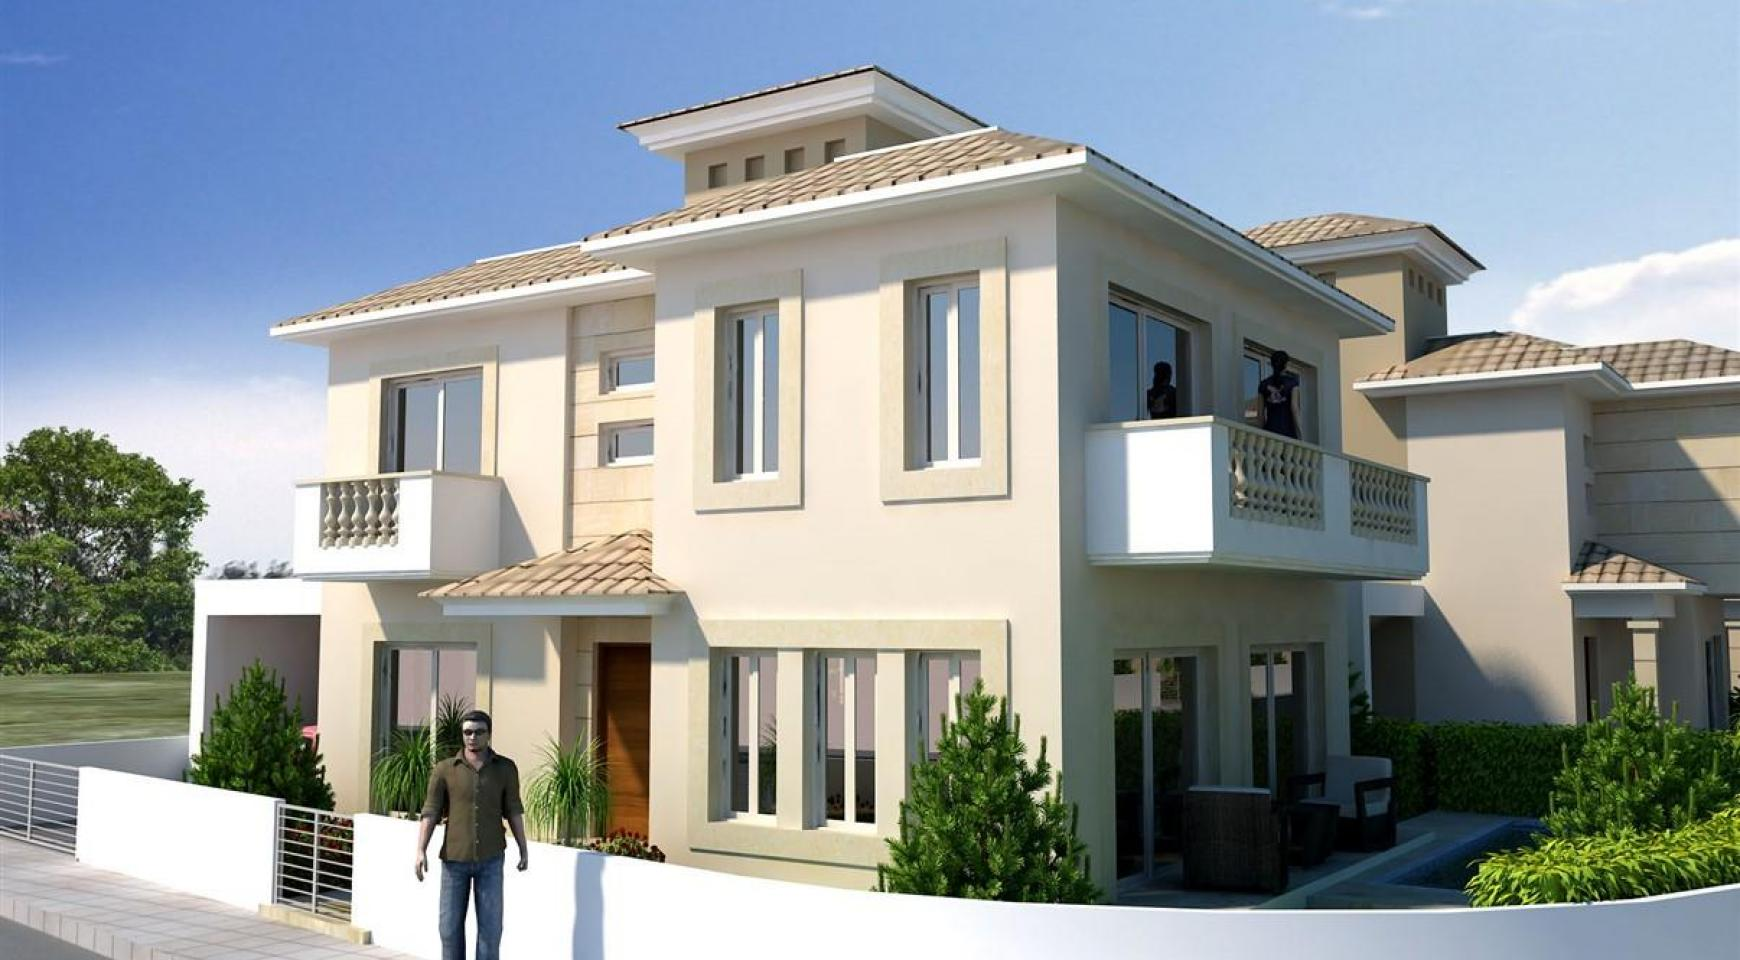 3 Bedroom Villa within a New Project - 5